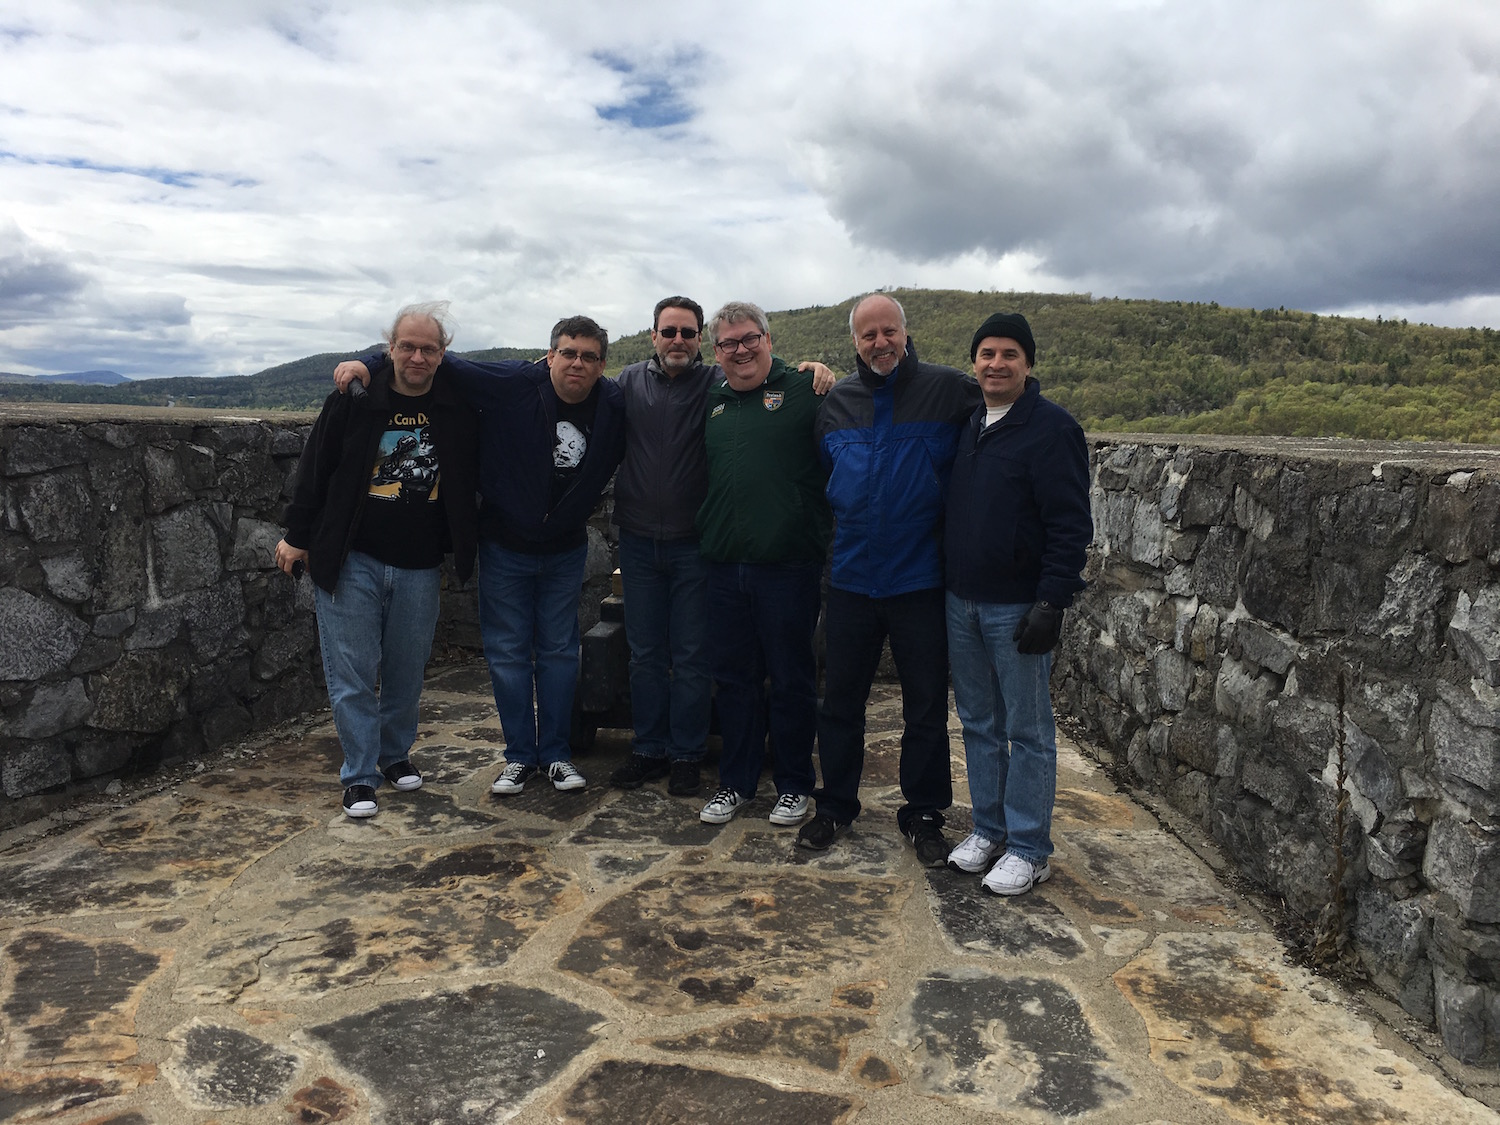 Writers on the Fort, From Left to Right: Scott Pearson, Bill Leisner, Bob Greenberger, Kevin Dilmore, Michael Jan Friedman, and DRG III ©2017 Karen Ragan-George